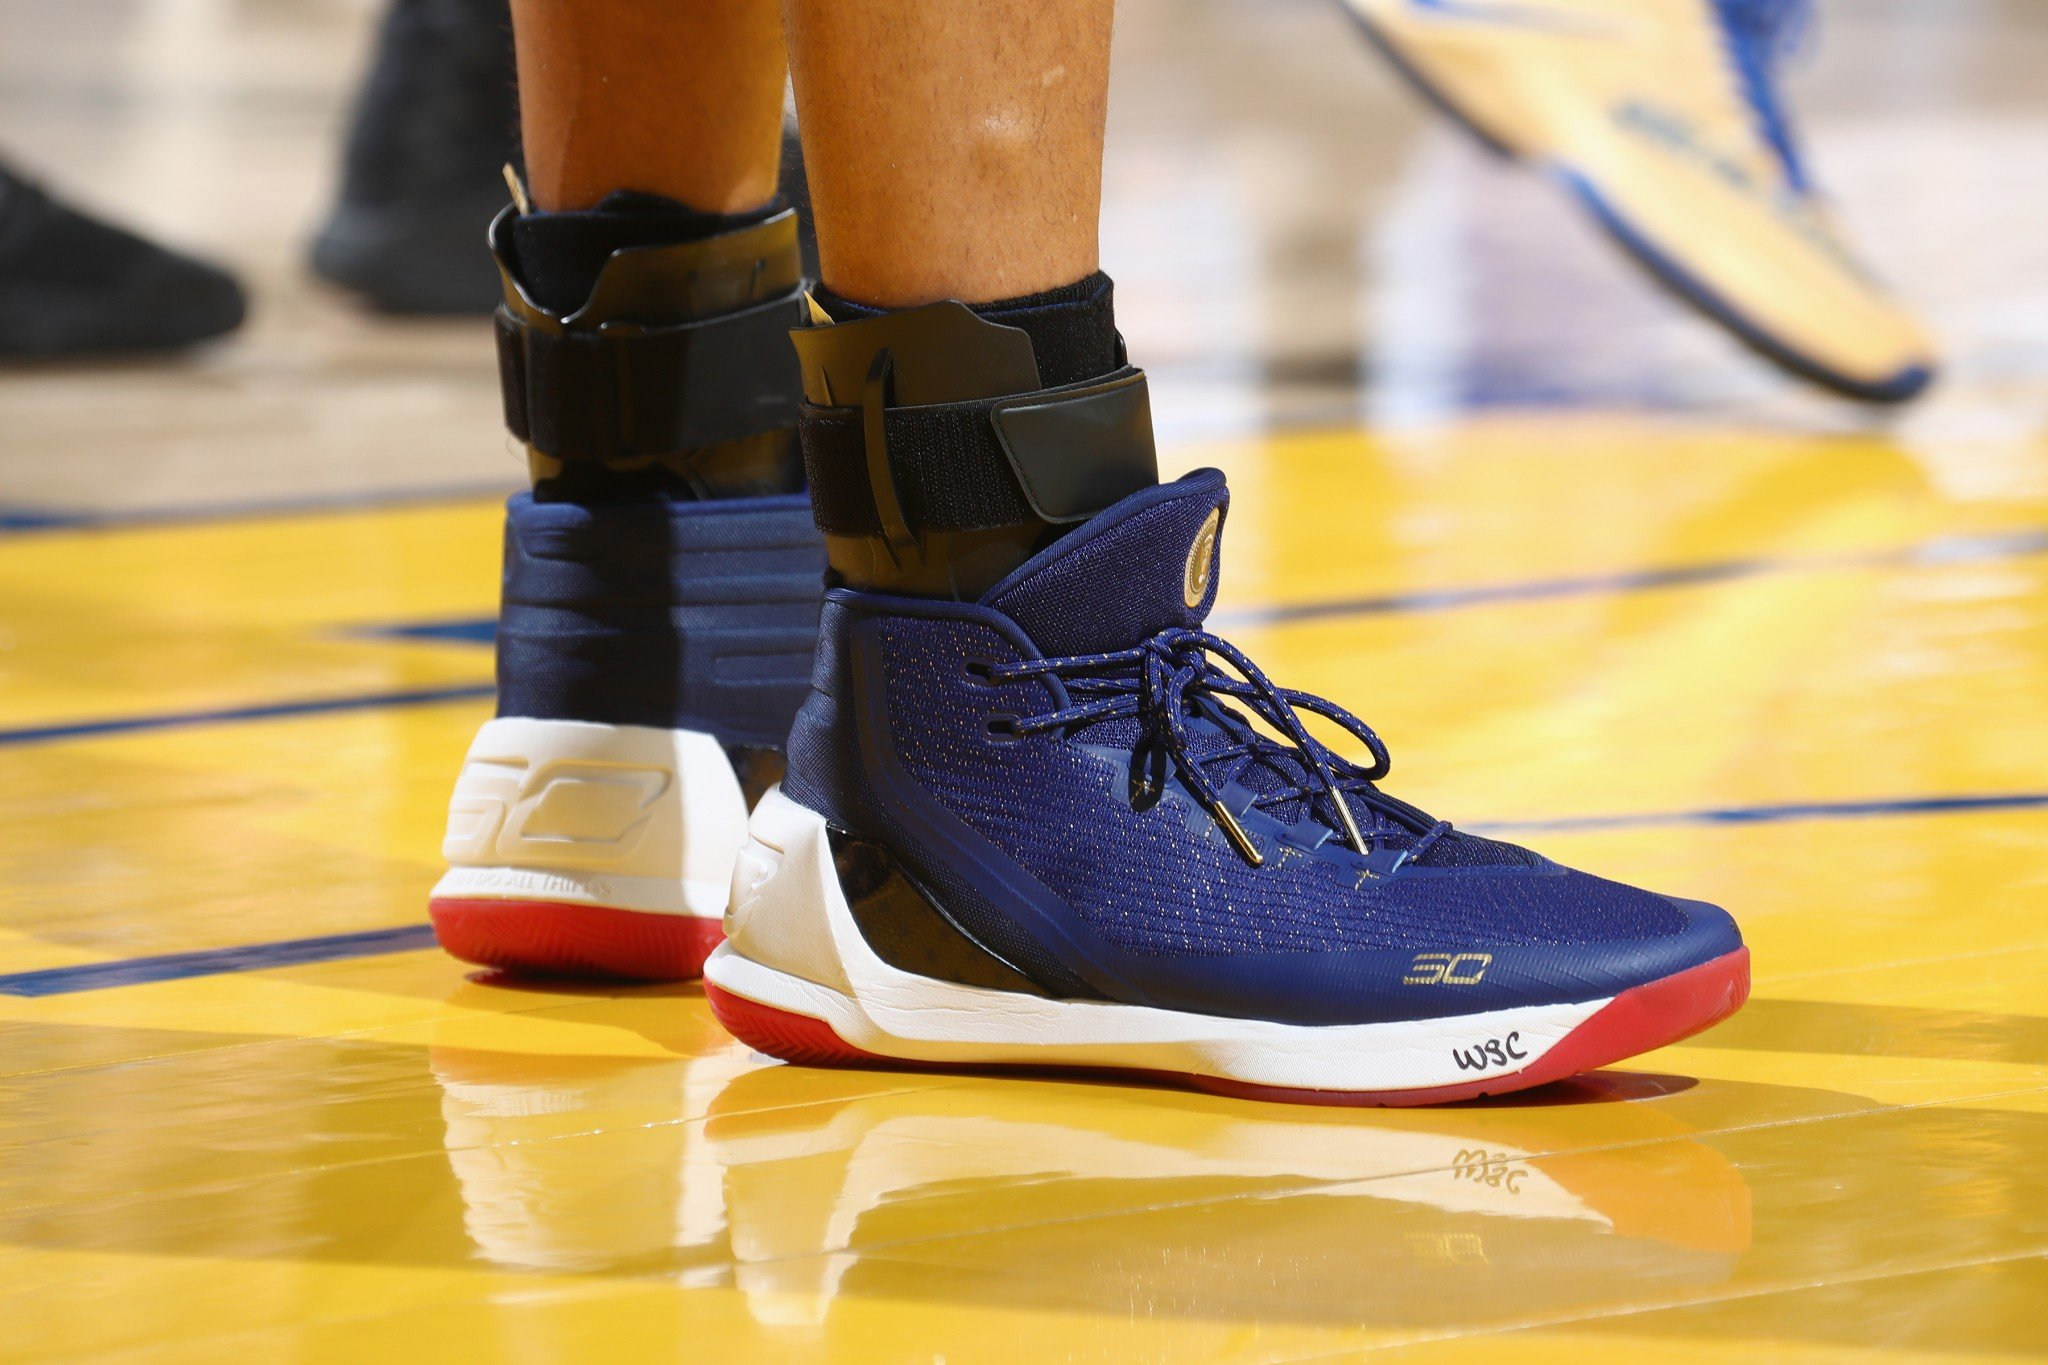 Stephen Curry paid tribute to President Barack Obama with his sneakers on Monday night. (Nathaniel S. Butler/NBAE/Getty Images)